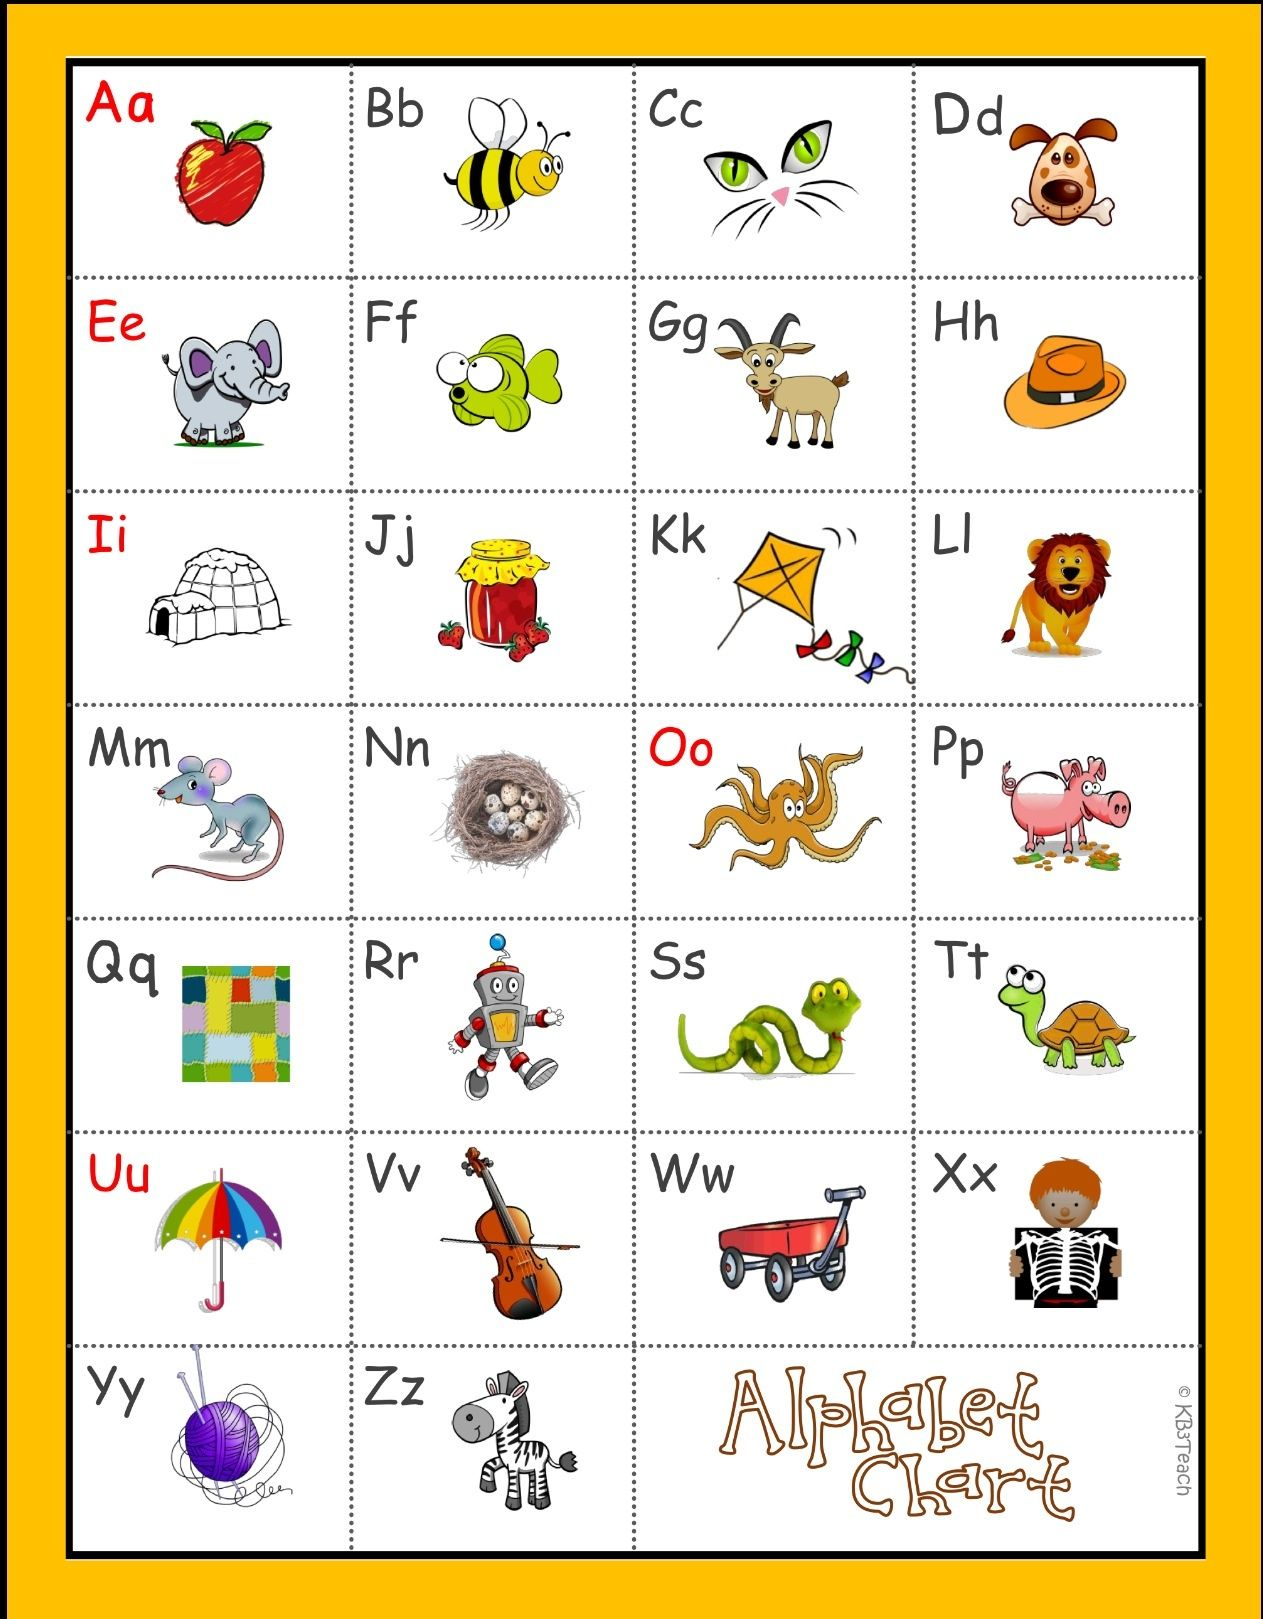 Alphabet Sounds Chart With Images